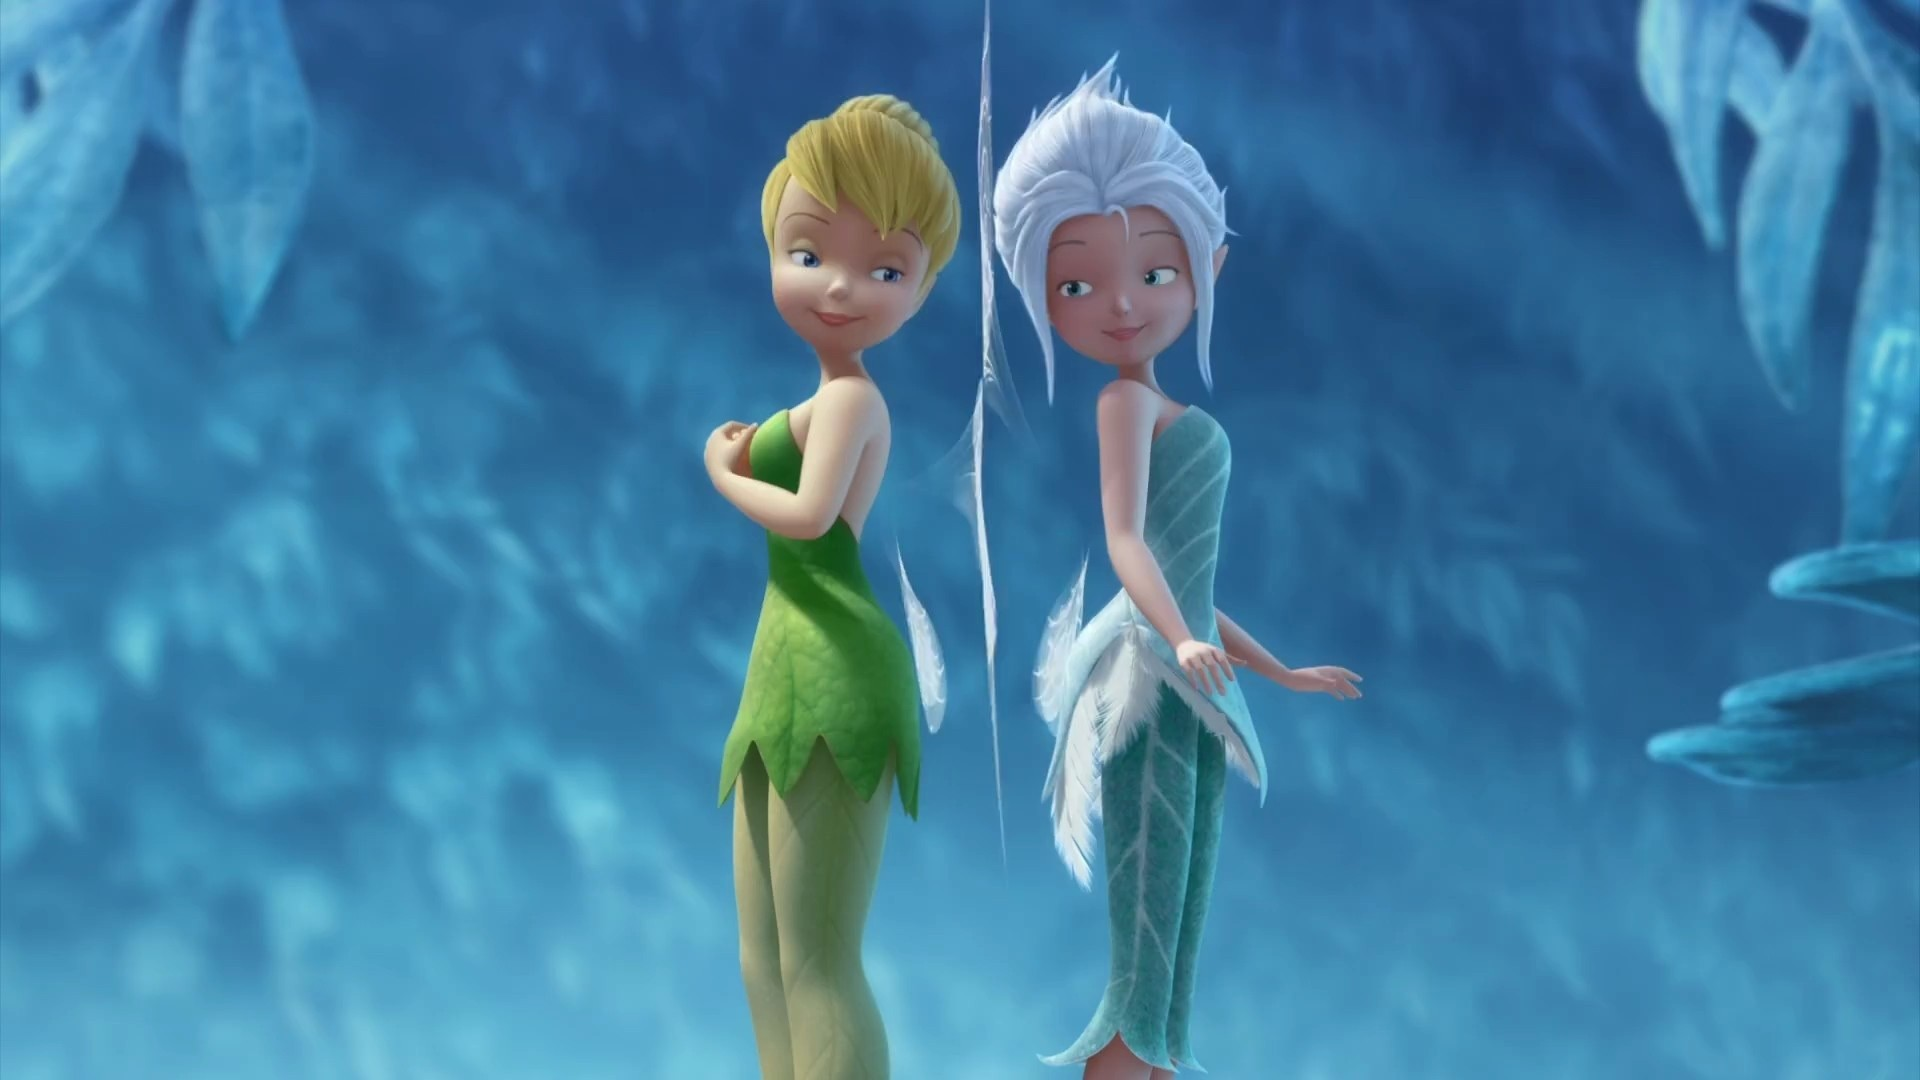 1920x1080 Tinker Bell and Her Sister - Bing Images